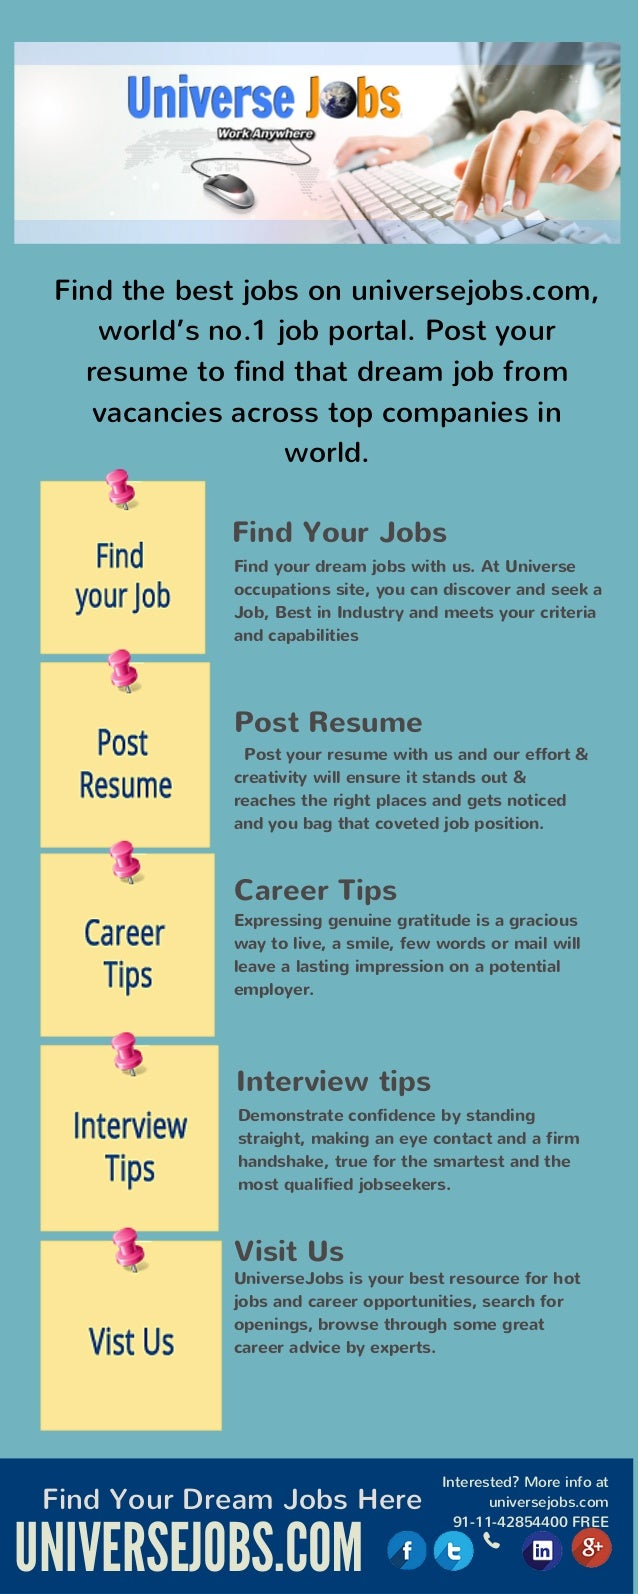 job search engines infographic job search engines infographic the best jobs on universejobs com world s no 1 job portal